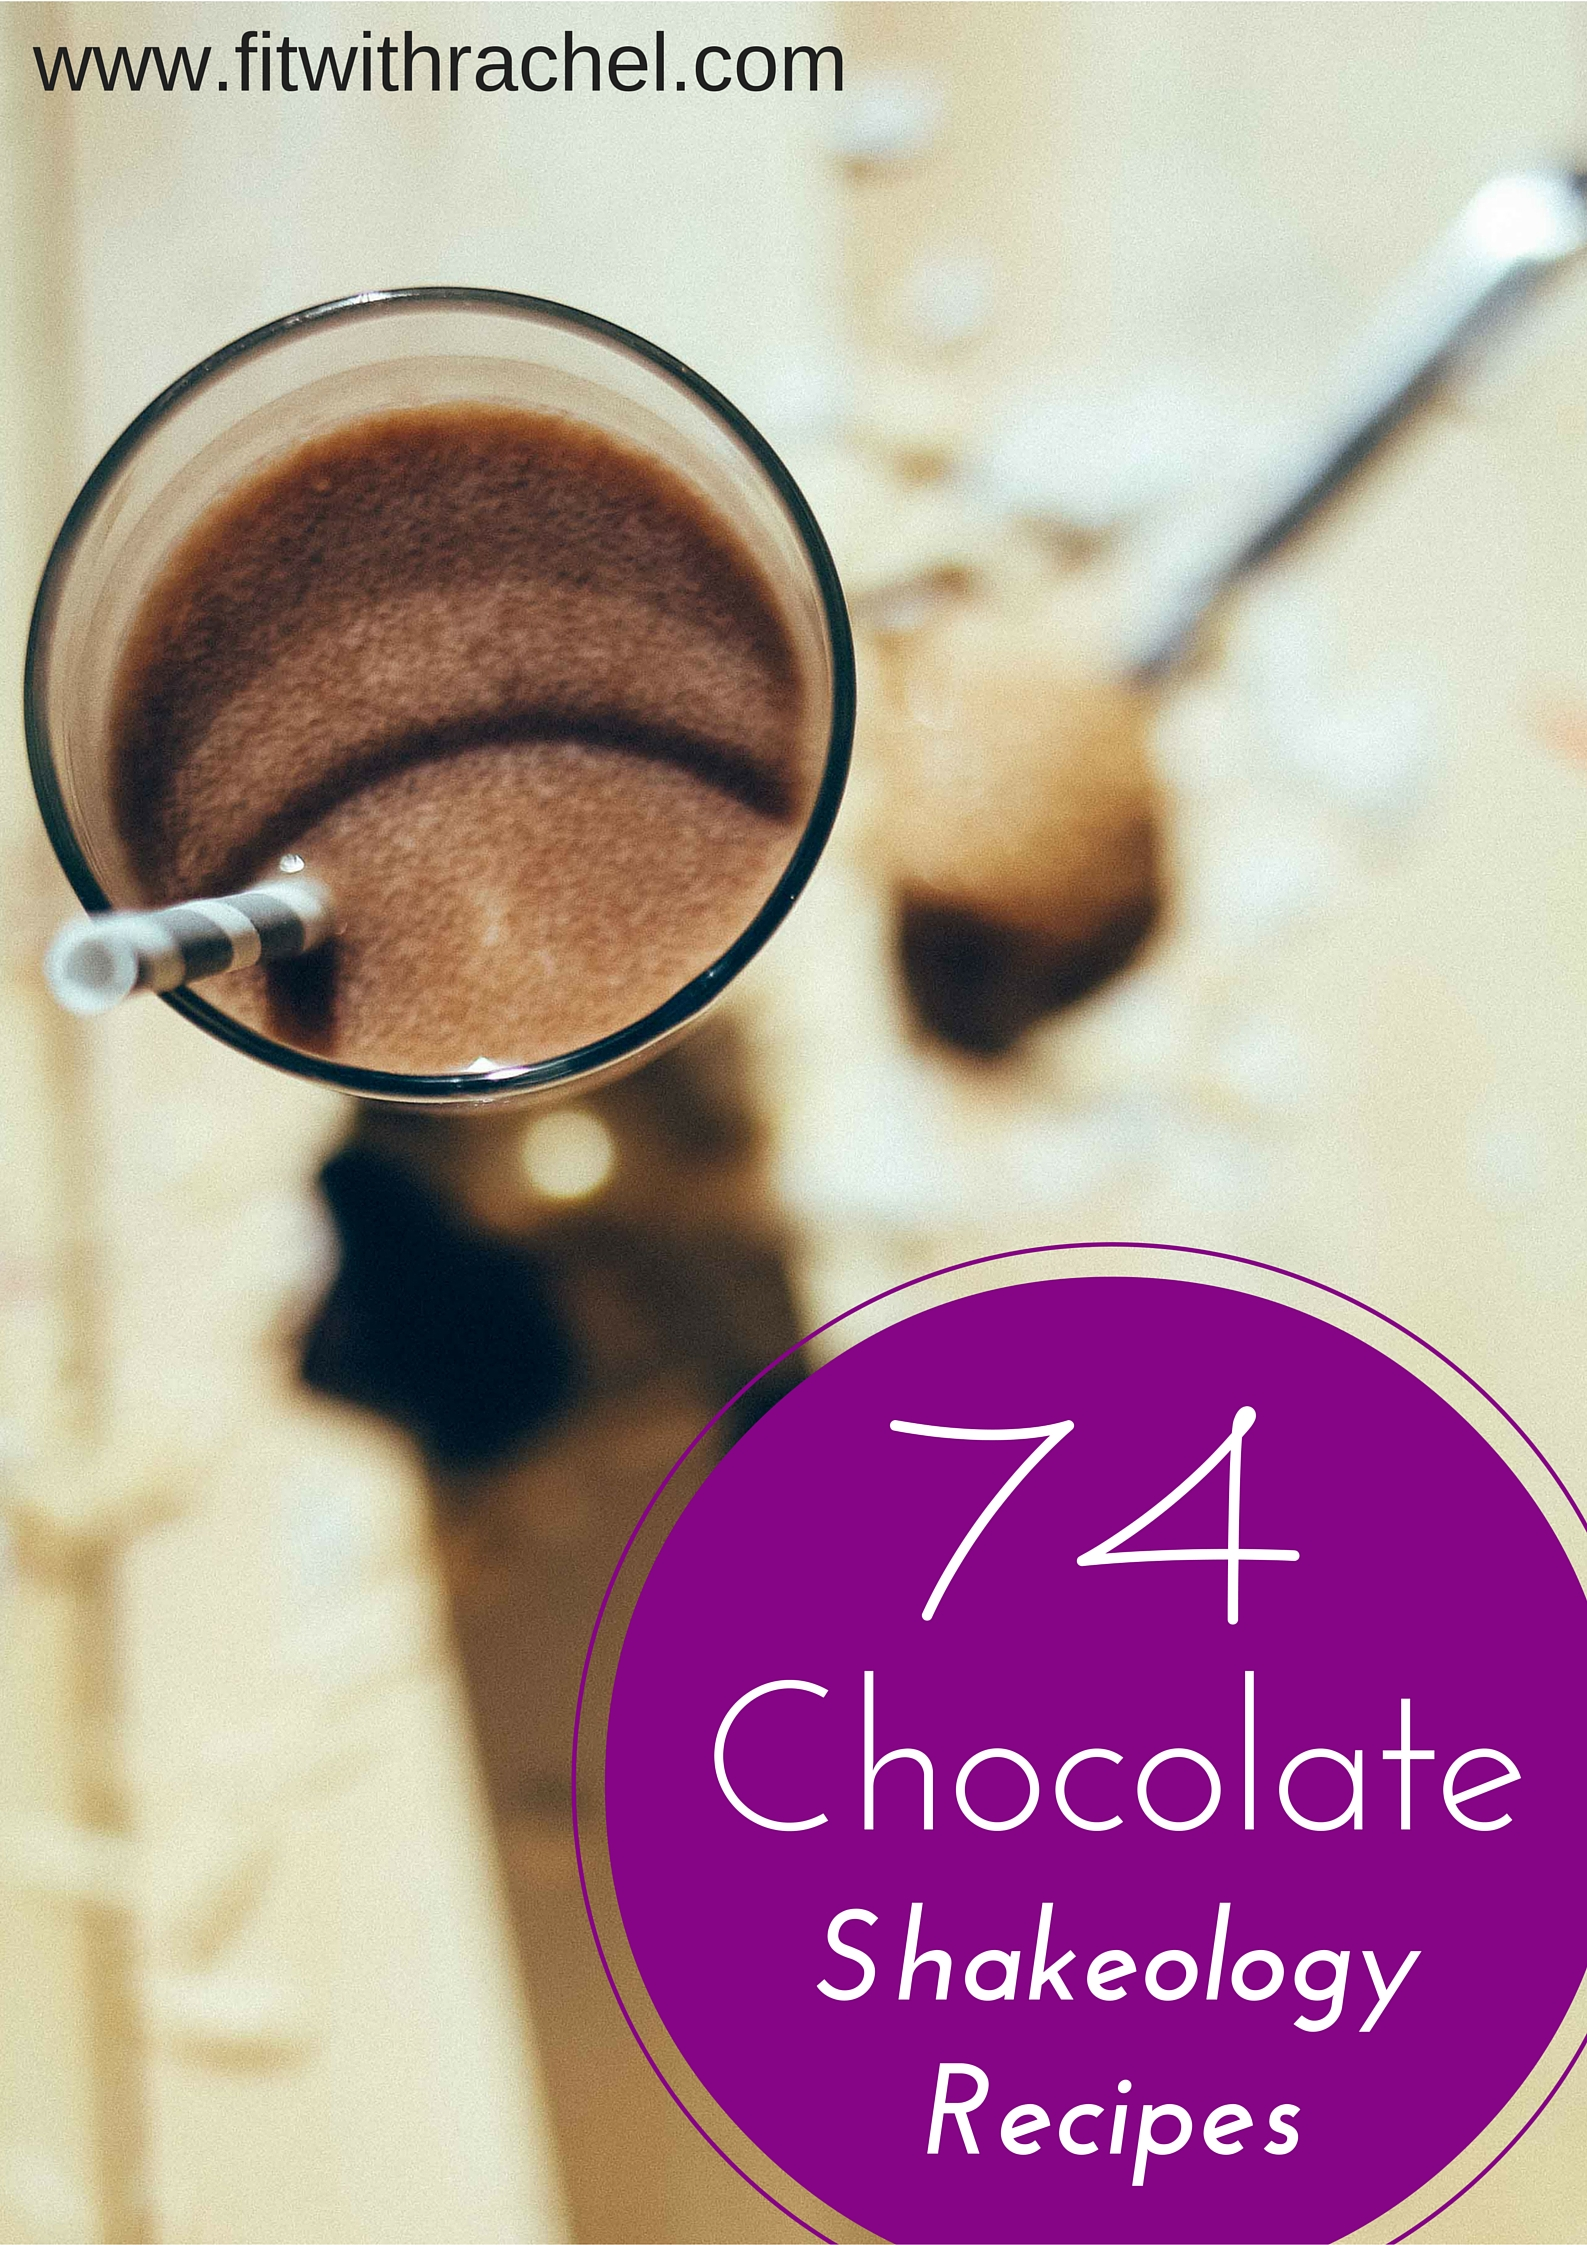 74 Chocolate Shakeology Recipes--AMAZING!